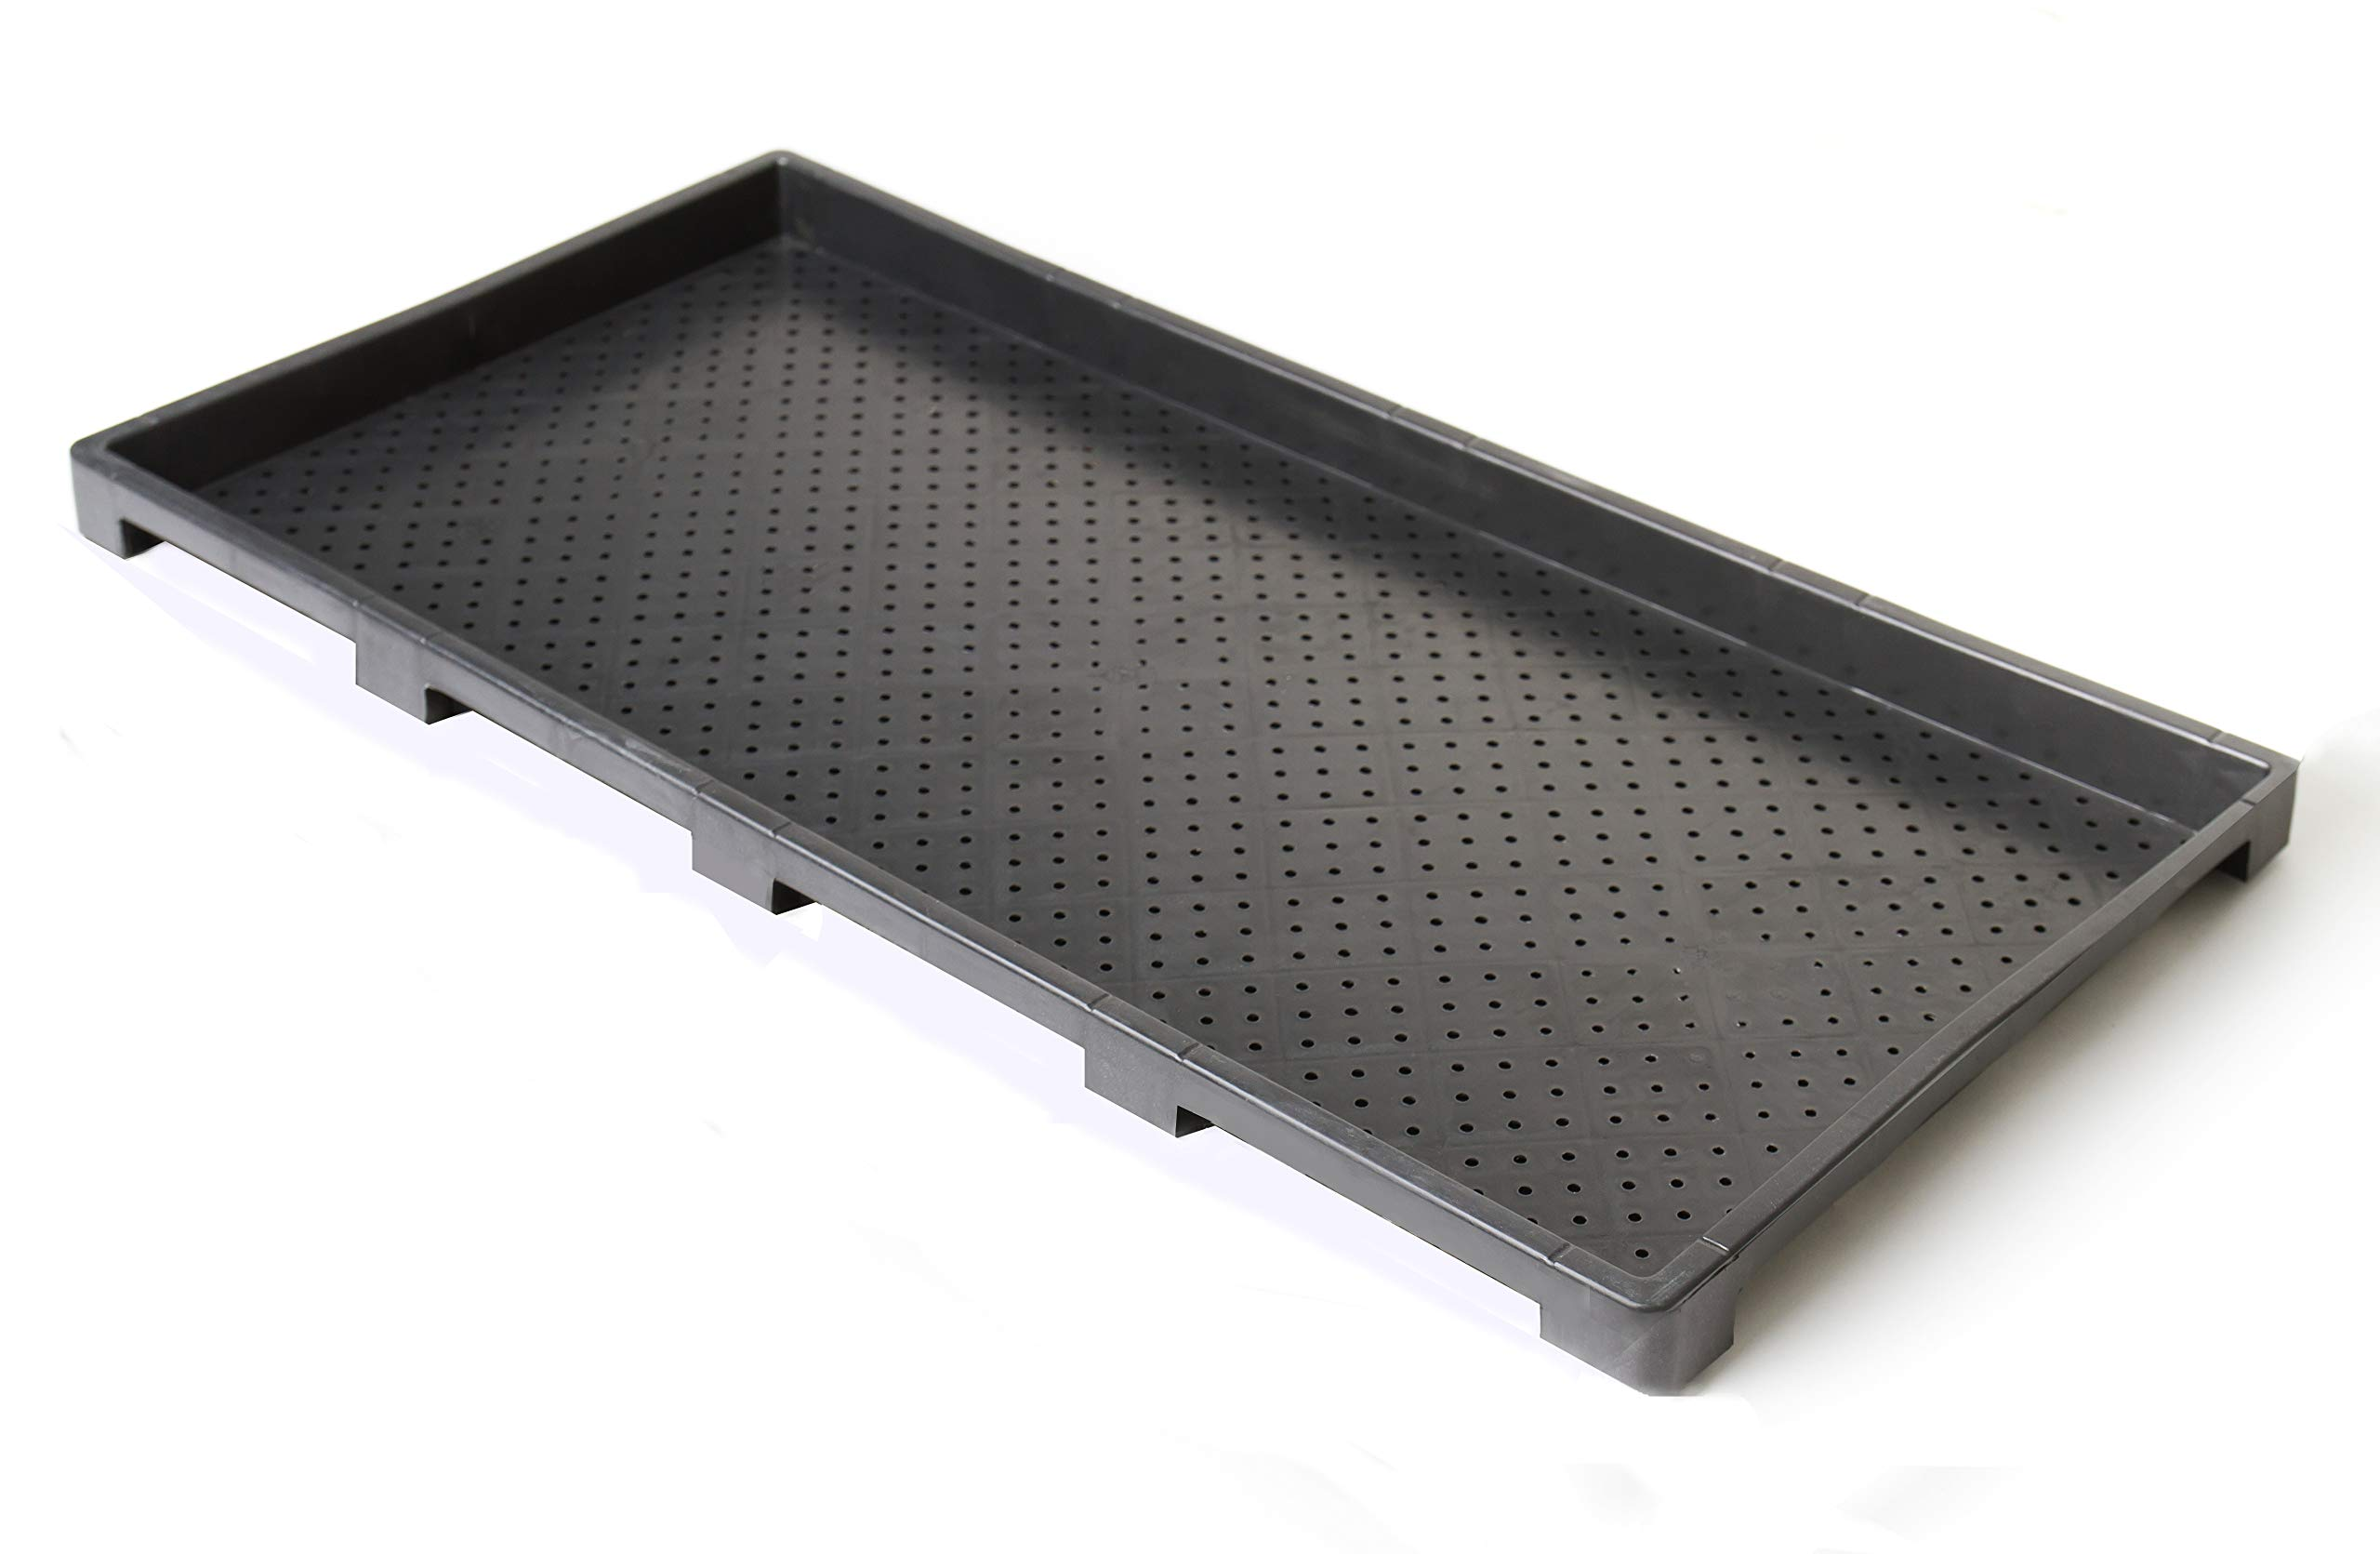 Extra Strength Microgreens Seedling Trays, Seed Starter Growing Kit WITH Holes for Organic Barley, Wheat Grass, Fodder, Planting, Seeds, Propagation System | NEW TRAY DESIGN